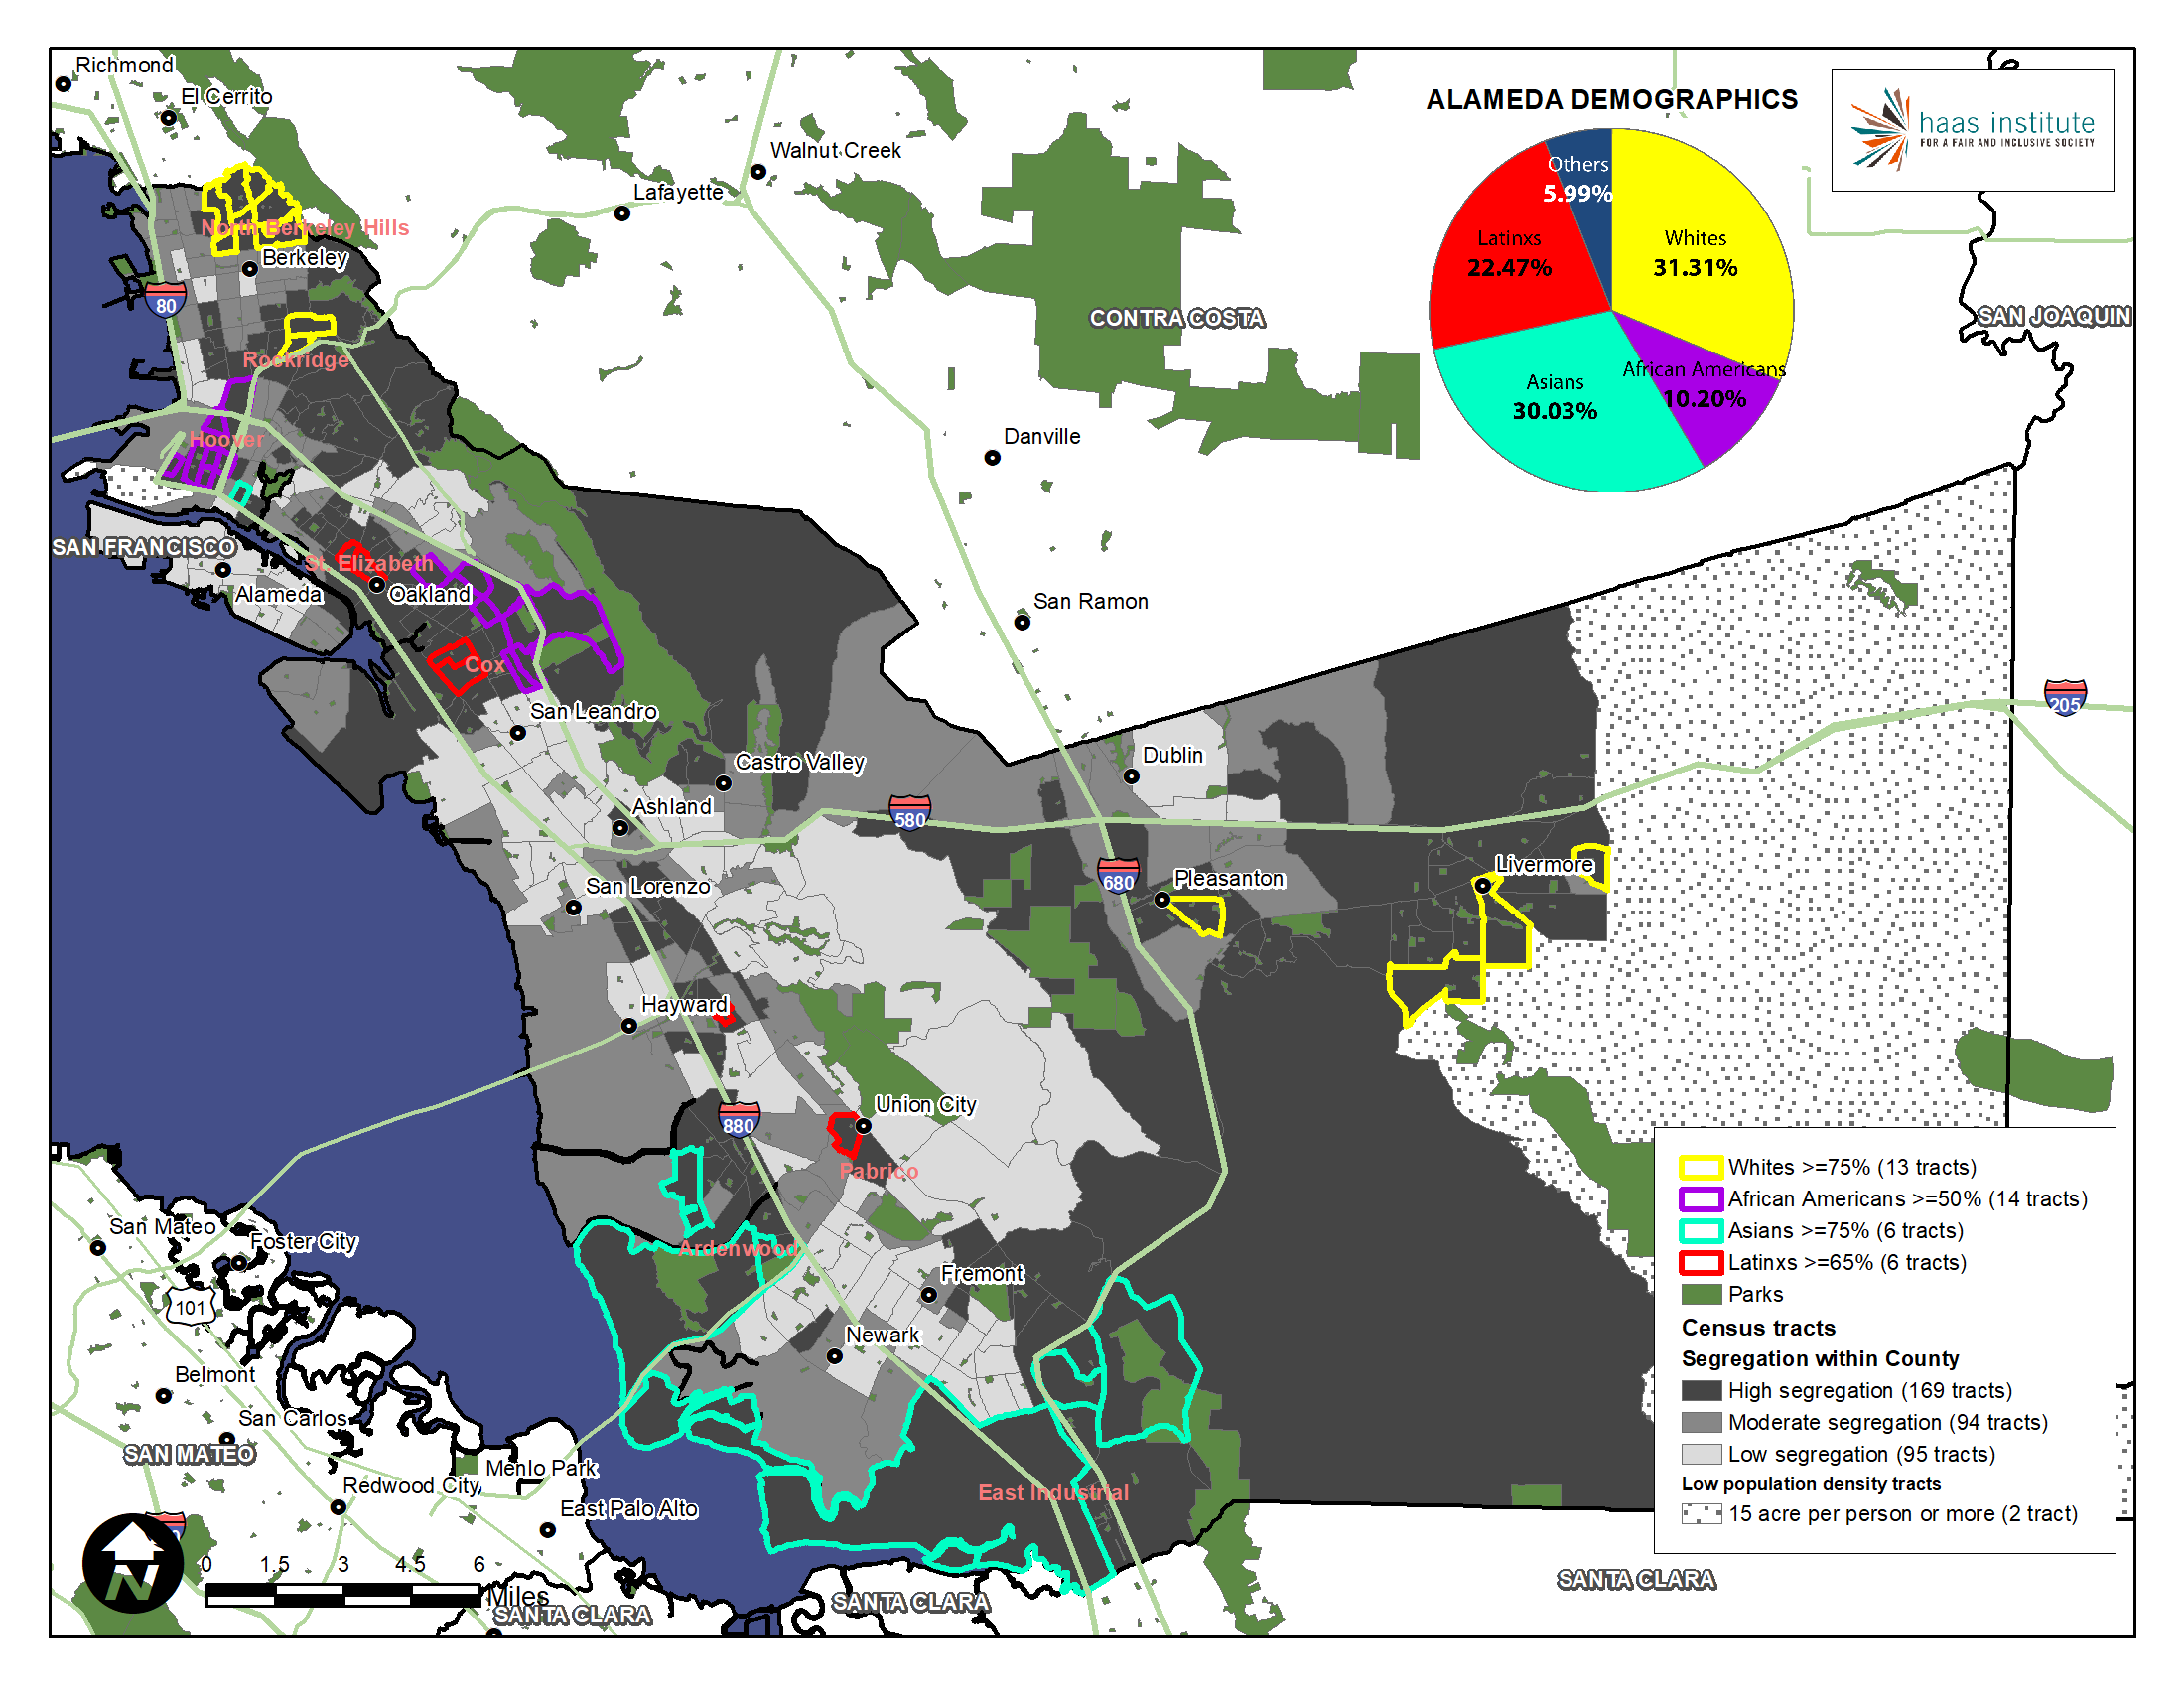 New Maps Provide Granular Look at Racial Segregation in SF ... Demographic Maps on educational map, economic map, urban rail and metro maps, us house of representatives map, population north carolina county map, reversed map, world map, nutrient map, dns map, geologic map, crime map, choropleth map, florida state capital map, structural map, dasymetric map, pictorial maps, racial map, competitive map, t and o map, personality map, social map, climate map, topological map, topographic map, flow map, person with map, nautical chart, city map, population density map, historic map, anthropological map, aeronautical chart,